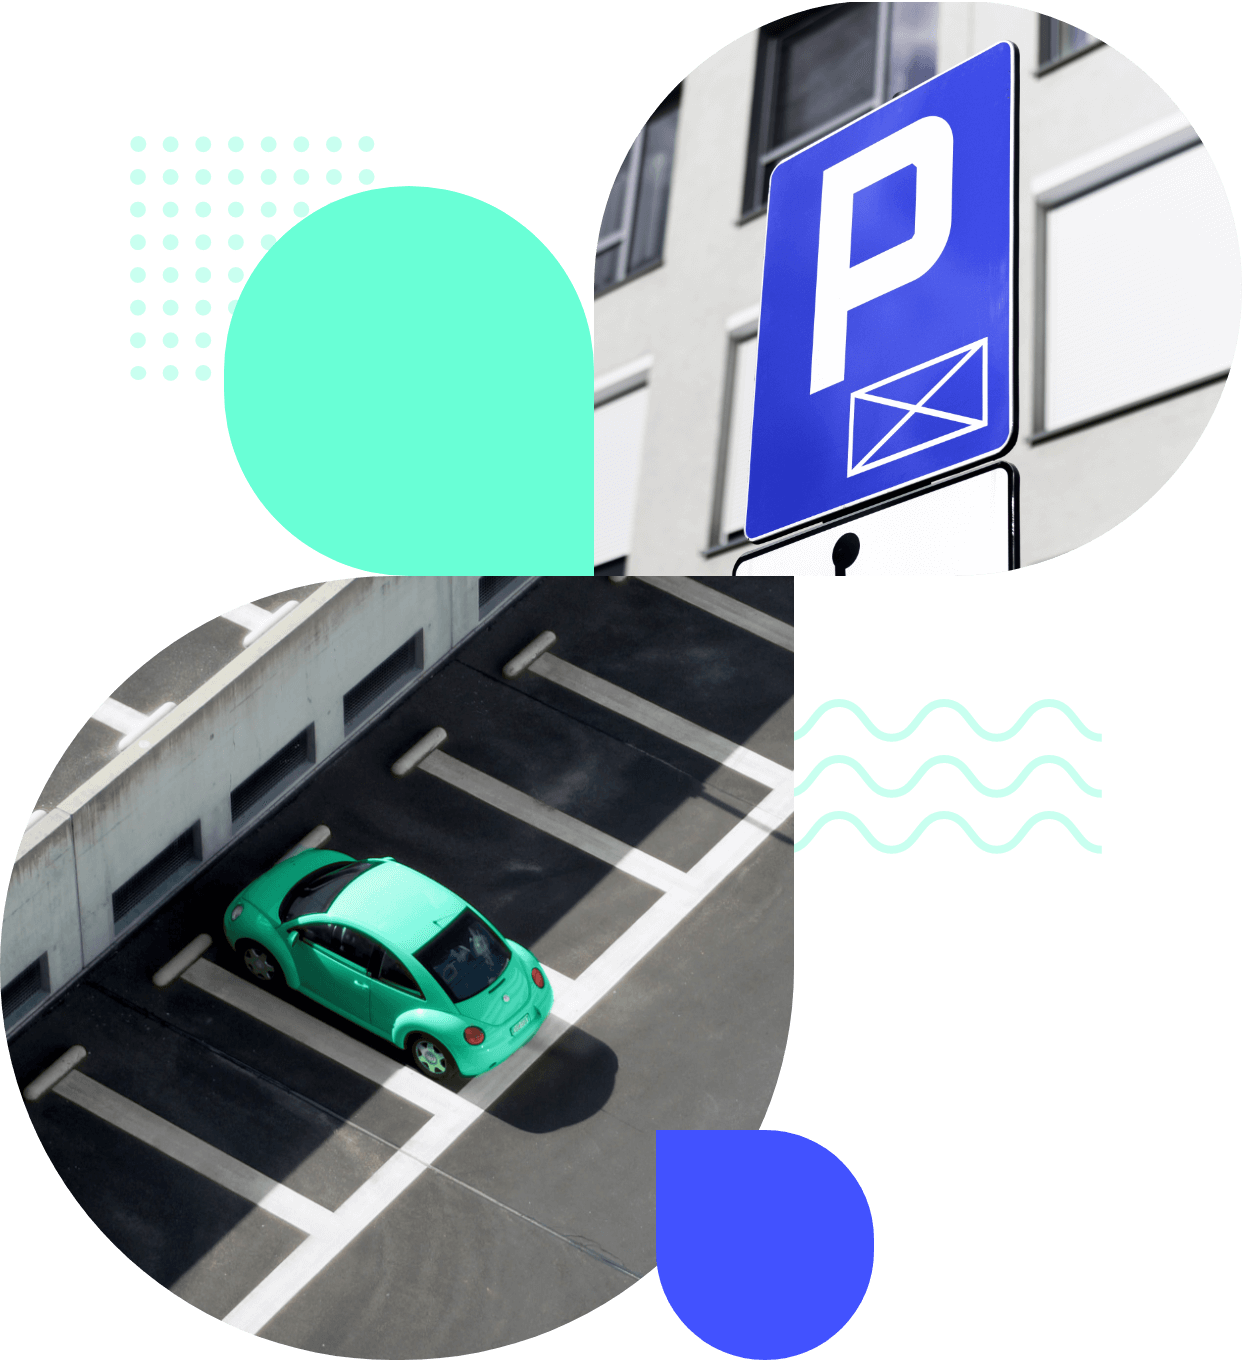 Electronic ticket in parking systems